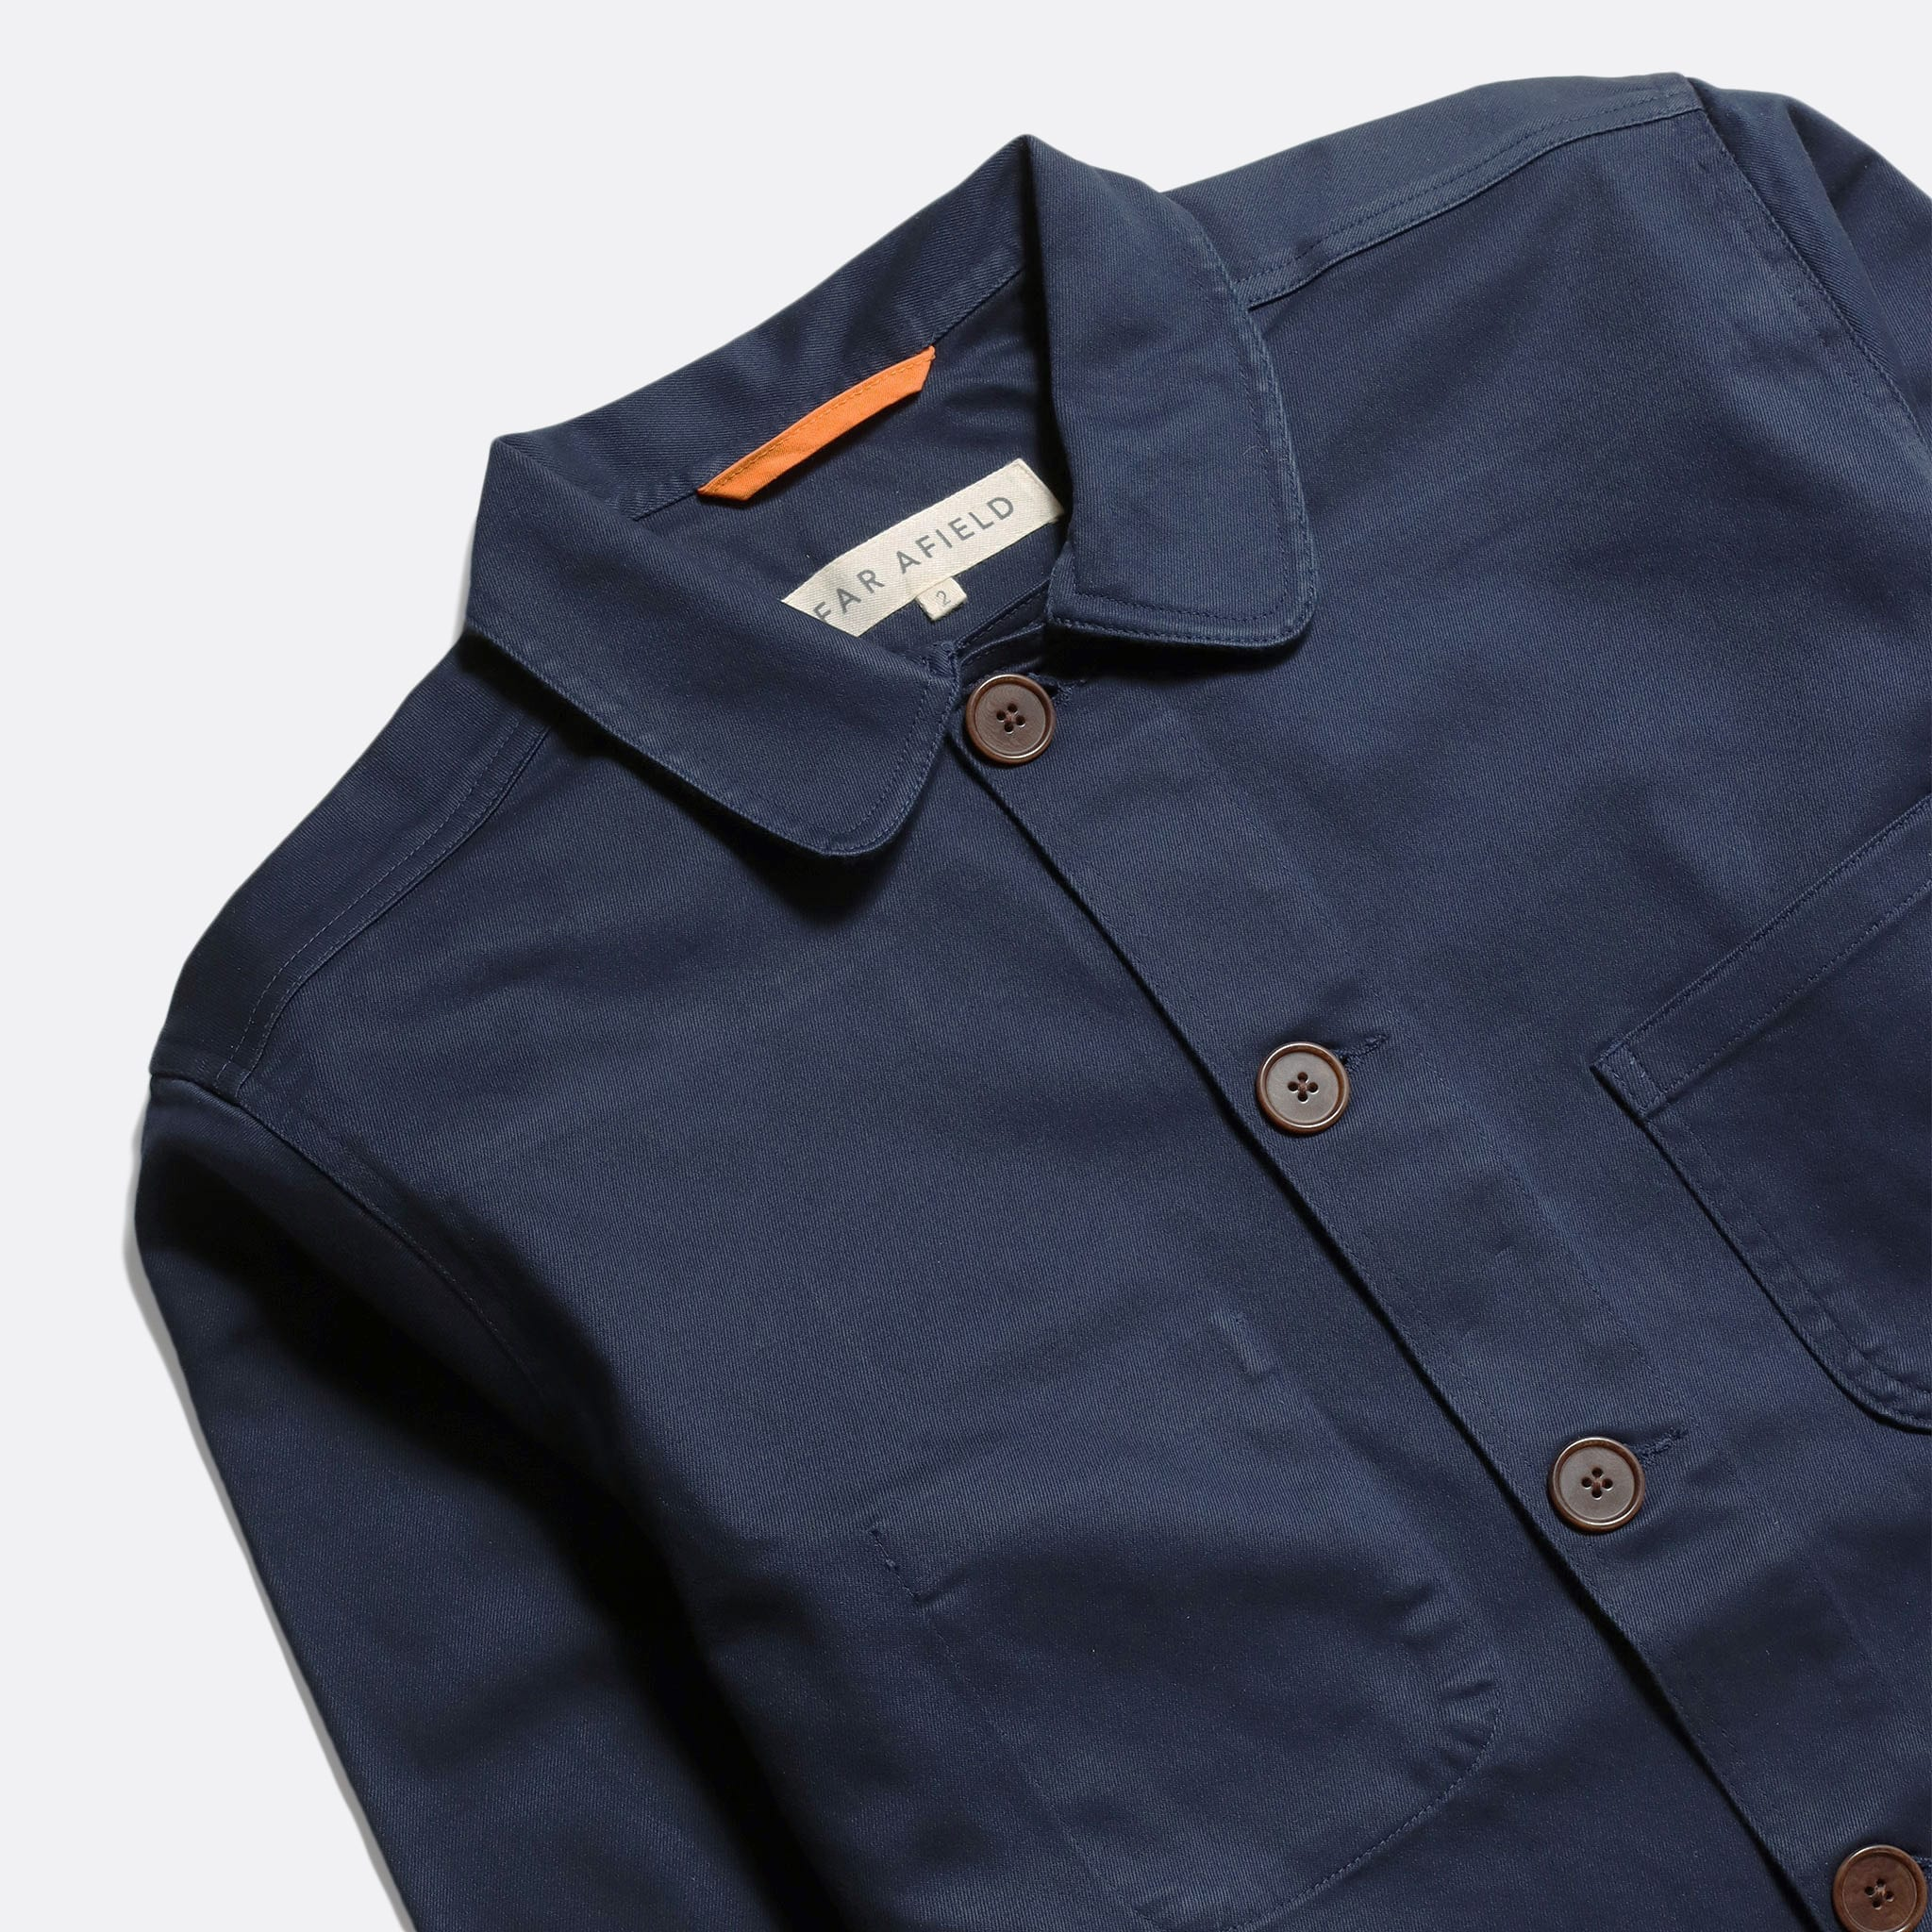 Far Afield Station Jacket a Ensign Blue Organic Cotton Twill Fabric Lightweight Utility Overshirt Classic Work 4